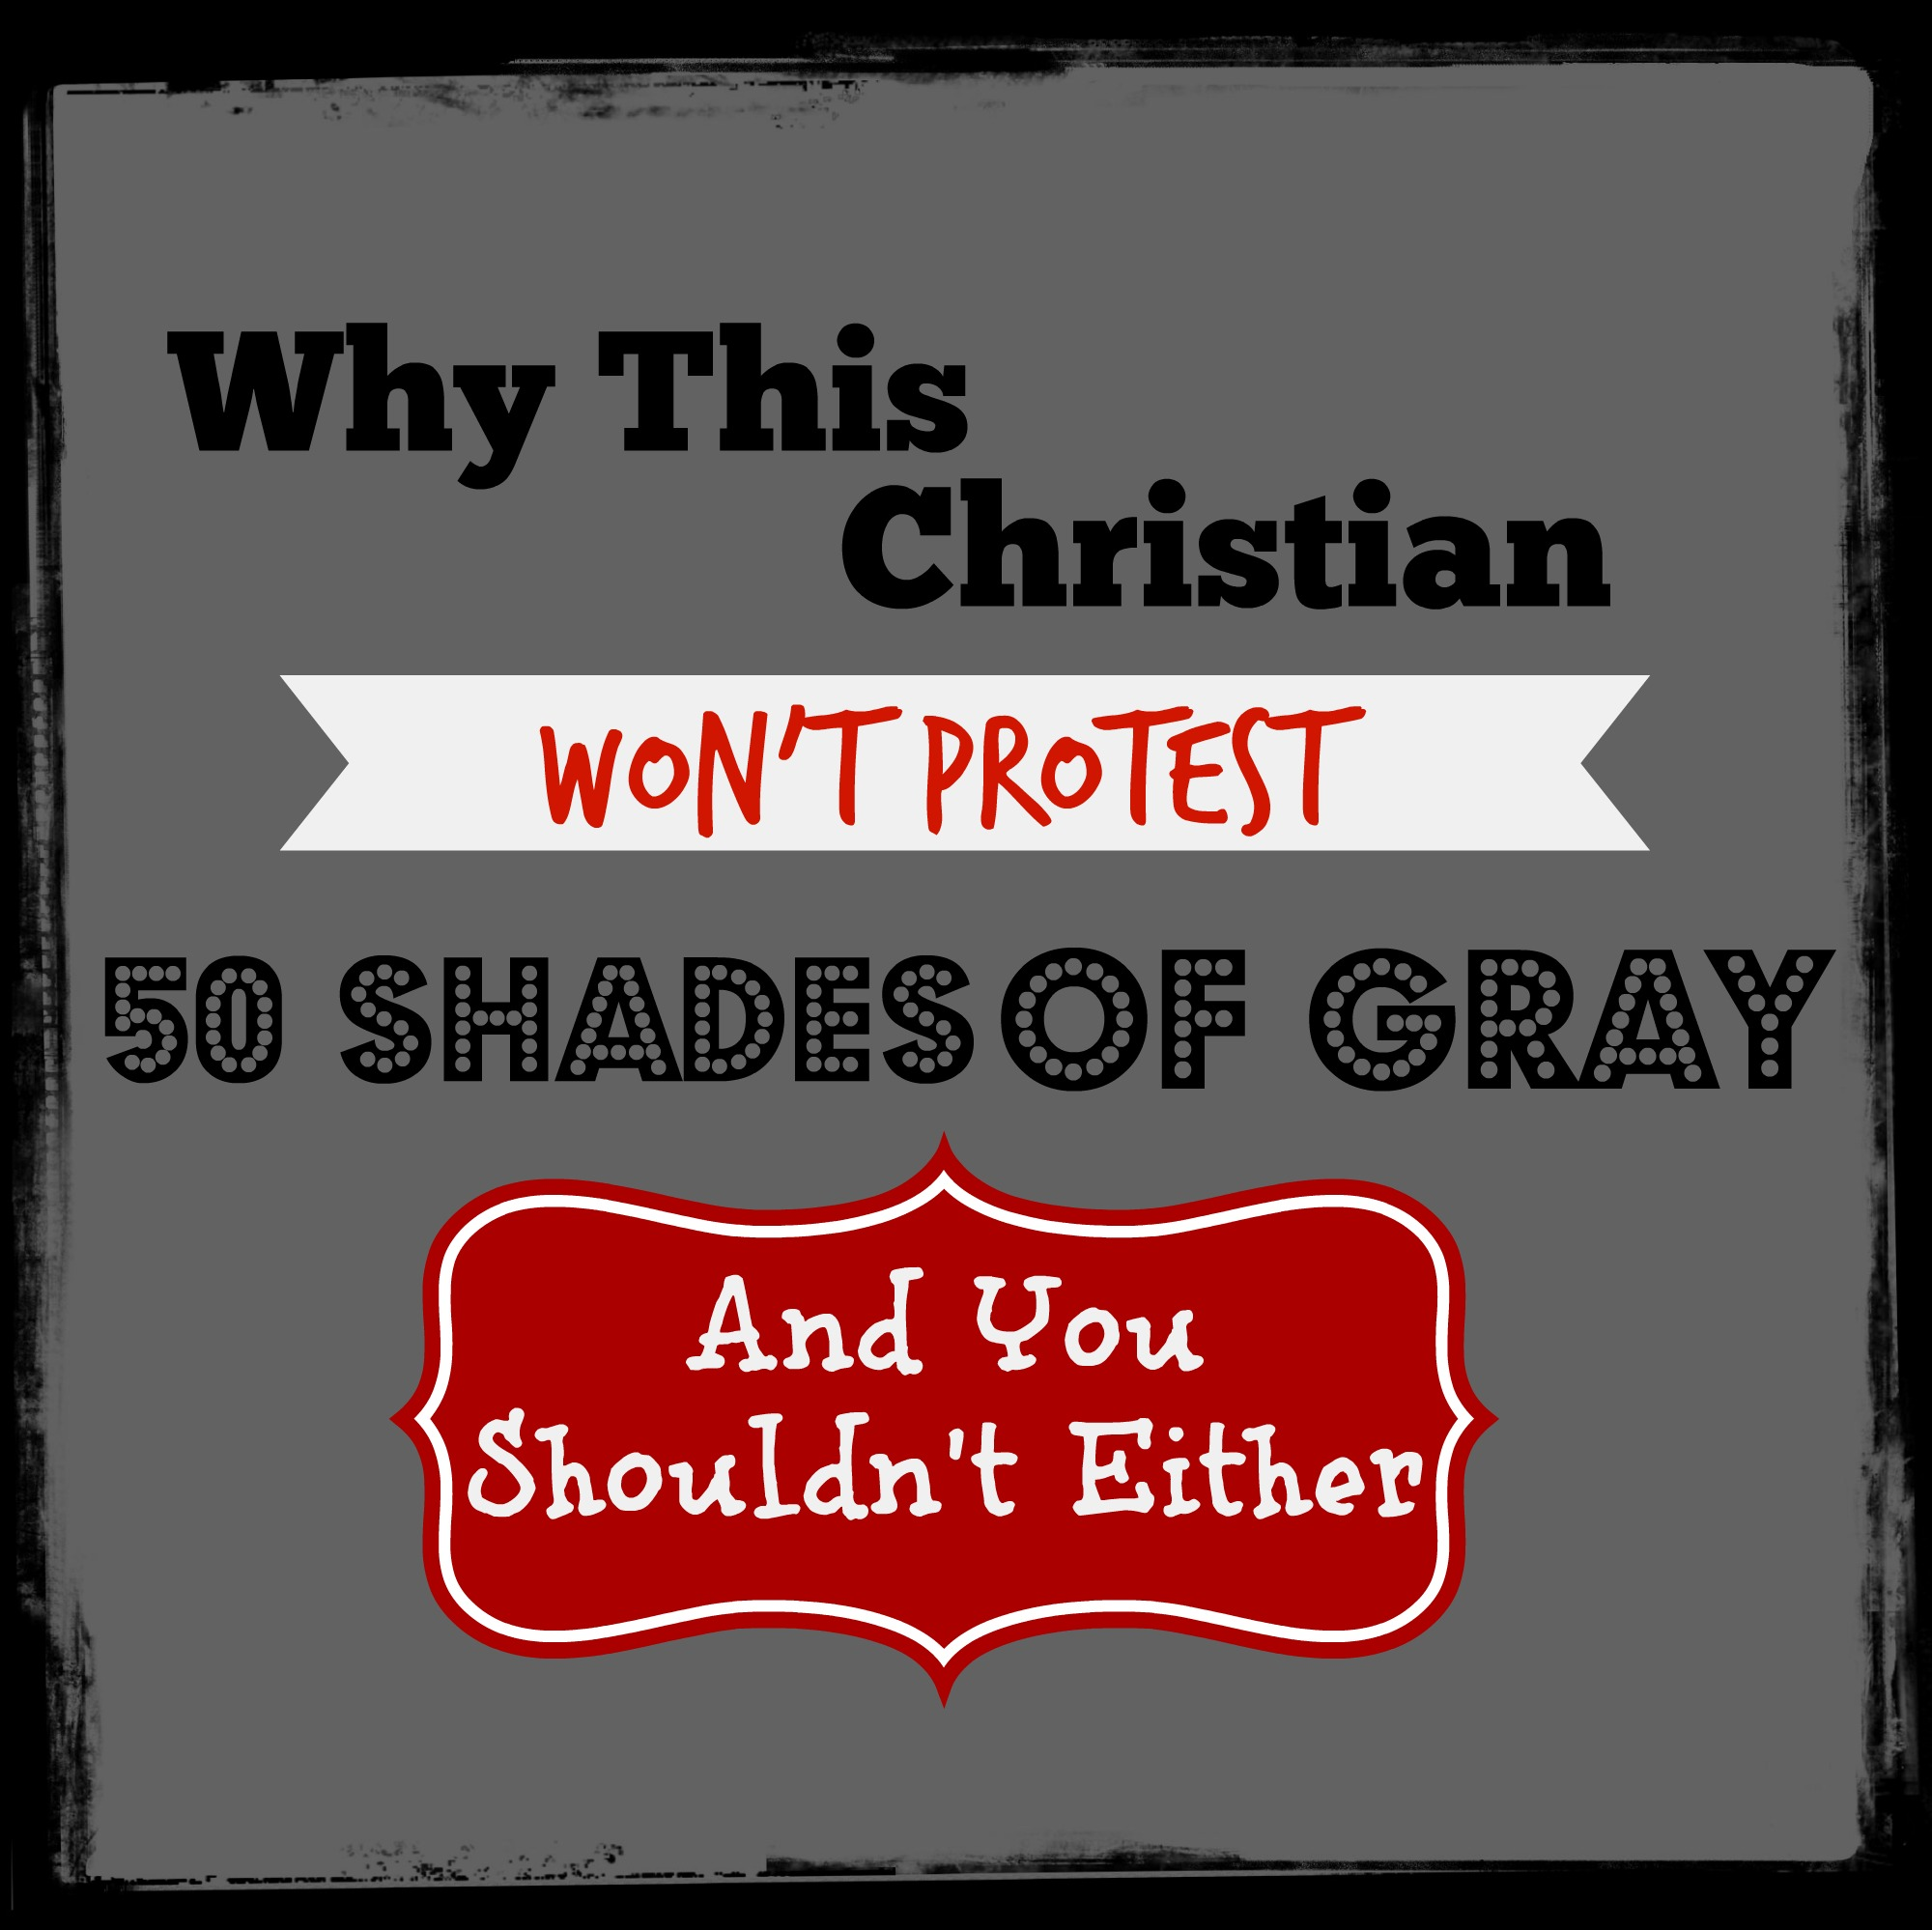 Why This Christian Won't Protest 50 Shades Of Gray And You Shouldn't Either